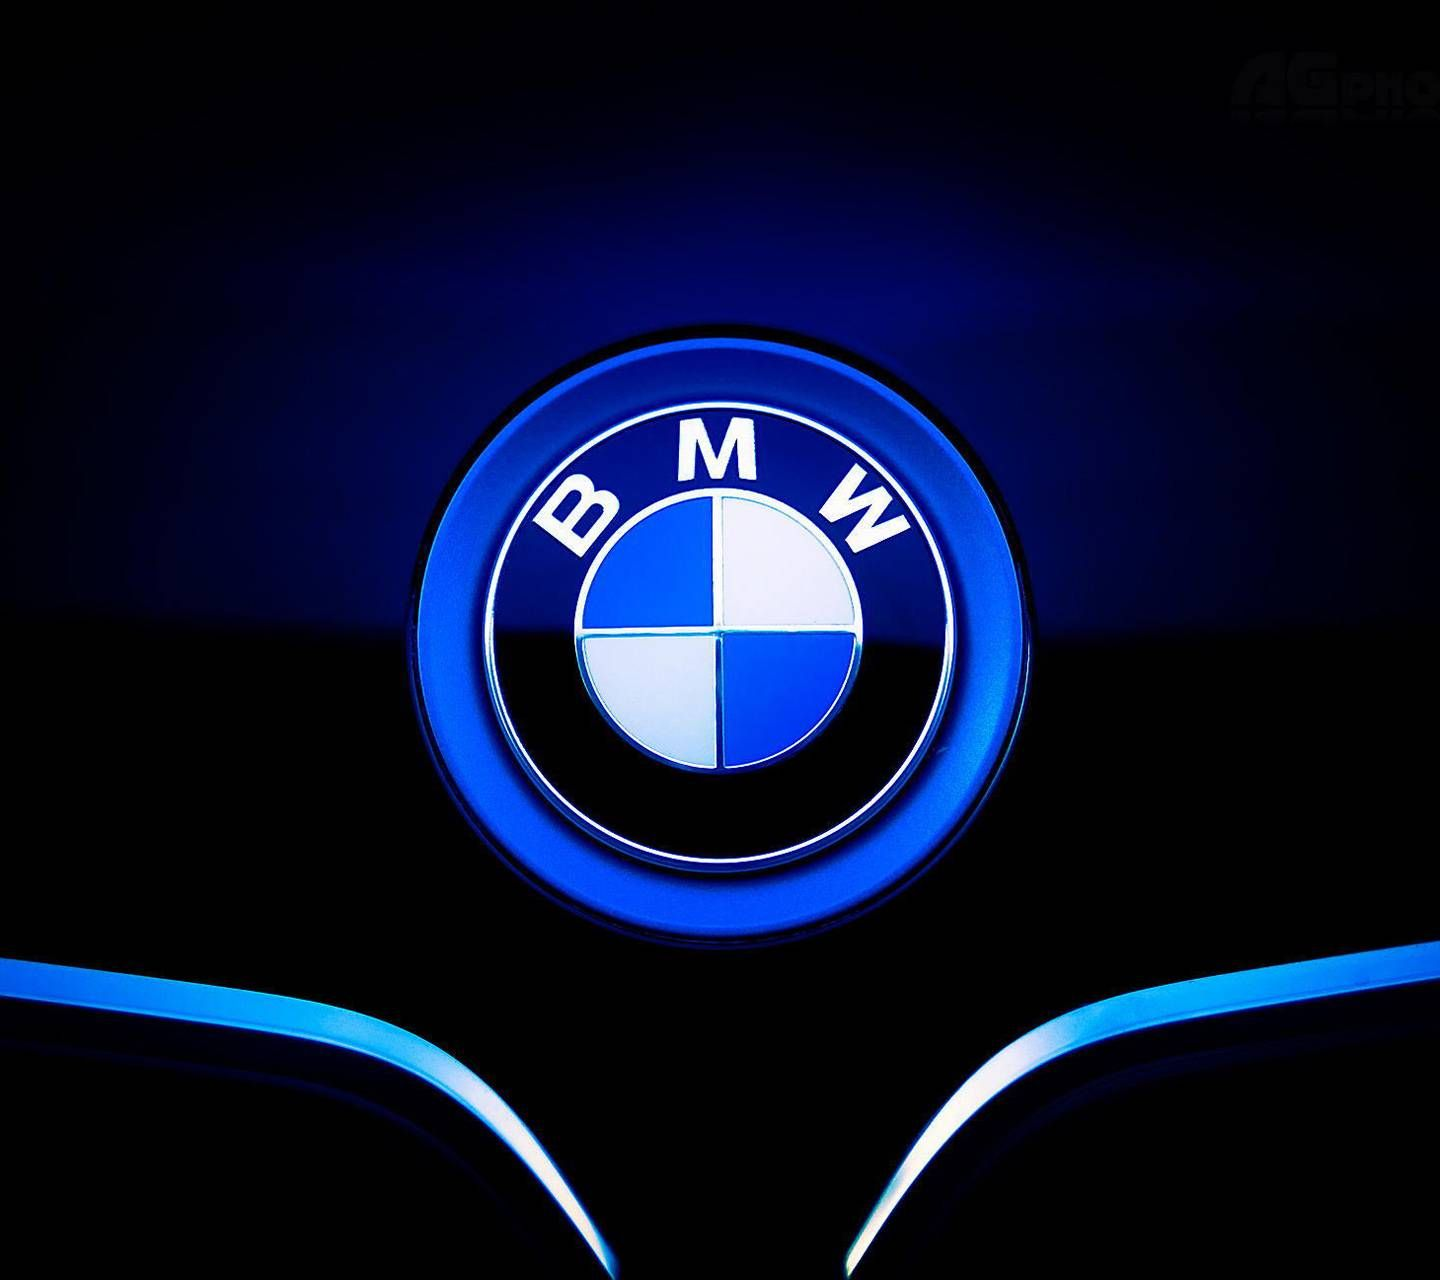 BMW Logo Wallpapers.